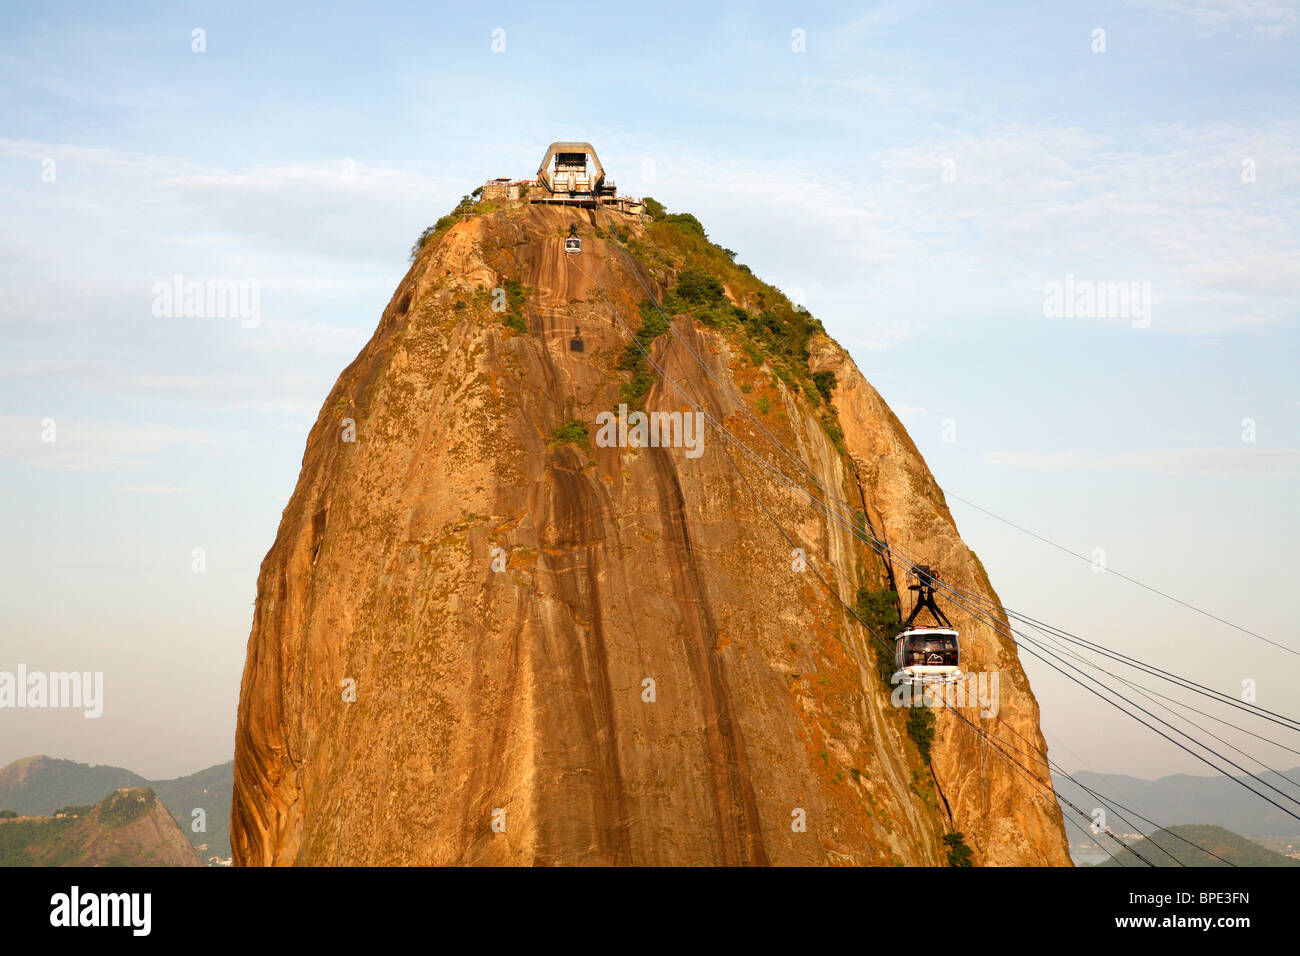 Cable cars at the Pao Asucar or Sugar loaf mountain, Rio de Janeiro, Brazil. Stock Photo